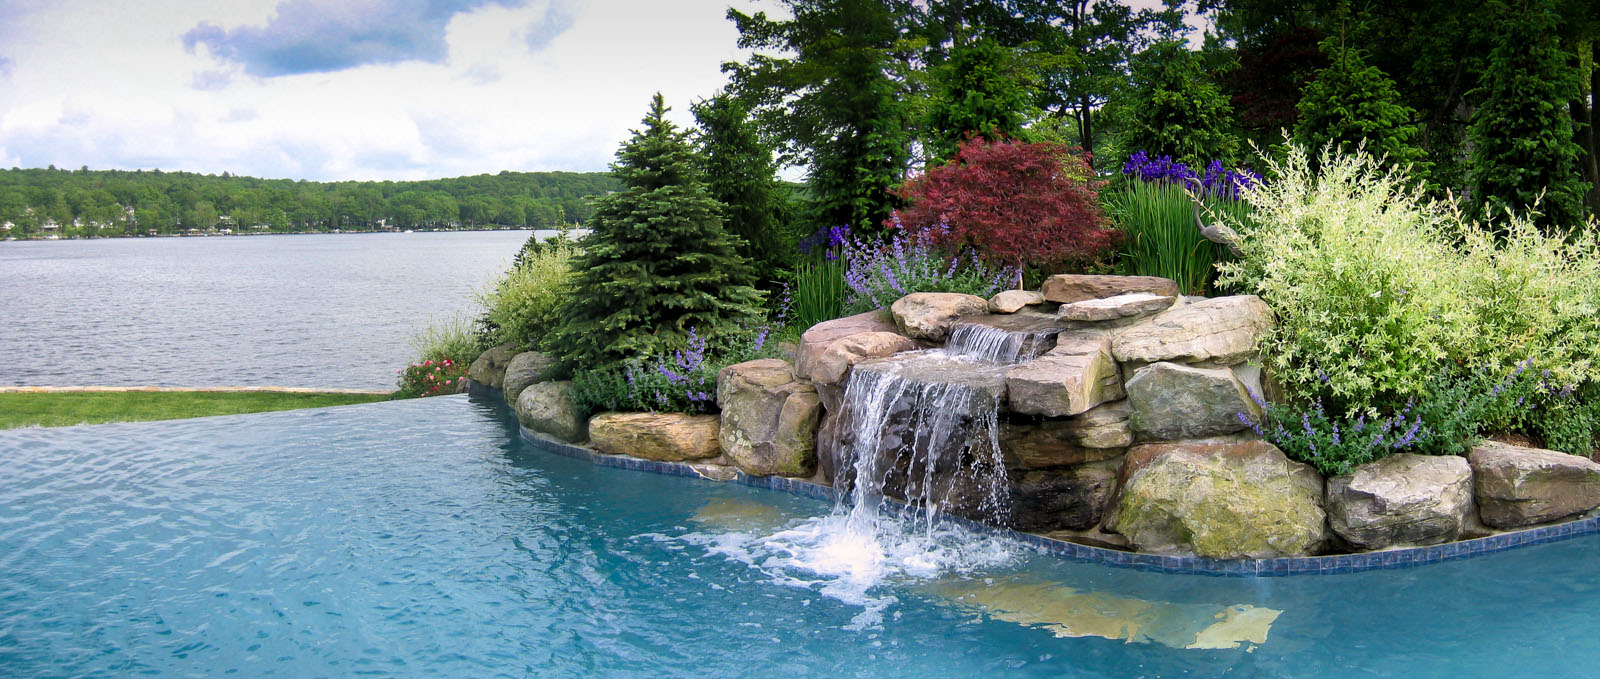 Swimming Pool Landscape Plantings Around Pool Waterfall